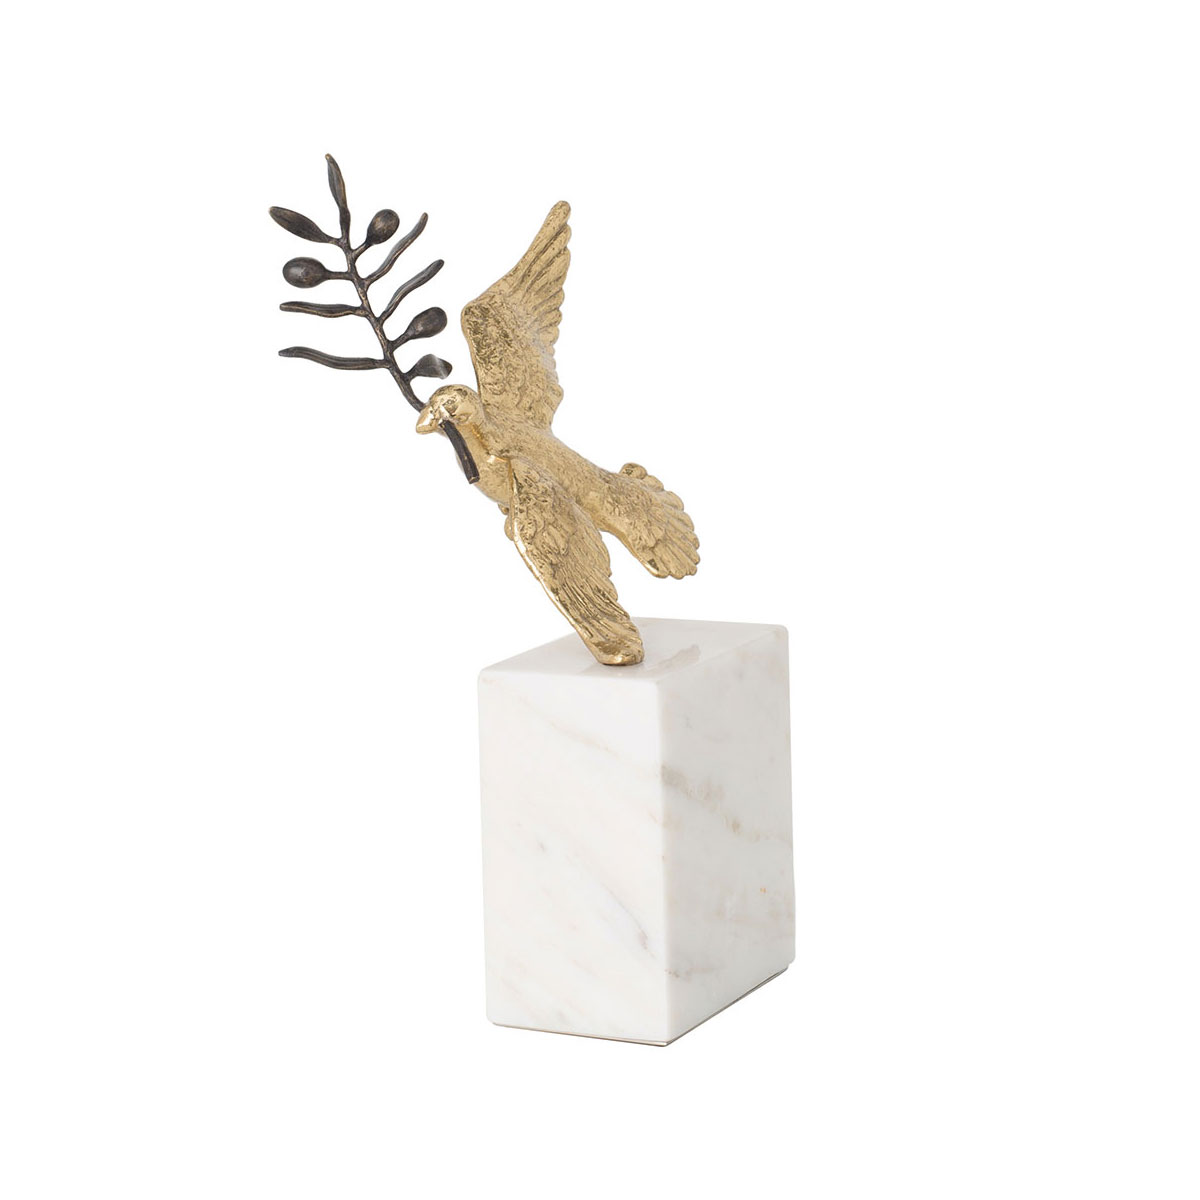 Michael Aram Dove Commemorative Sculpture, Limited Edition